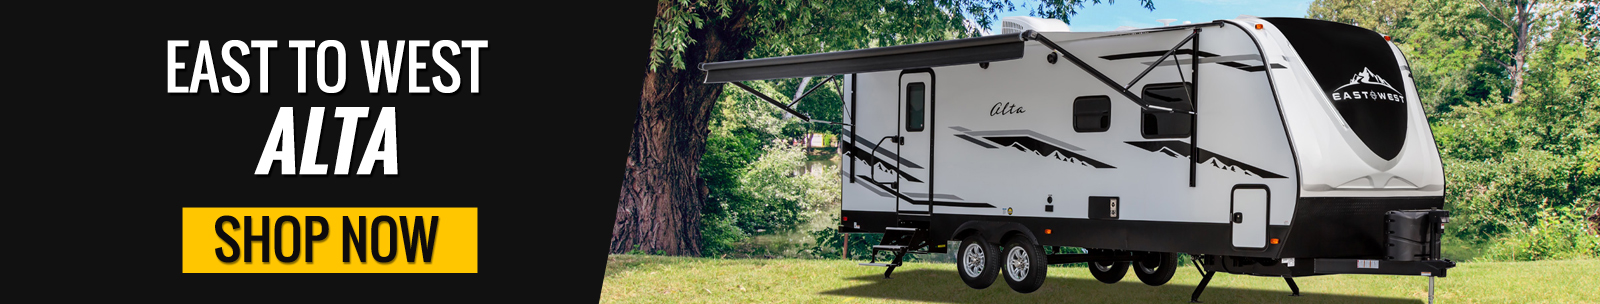 Alta Travel Trailer Now Available